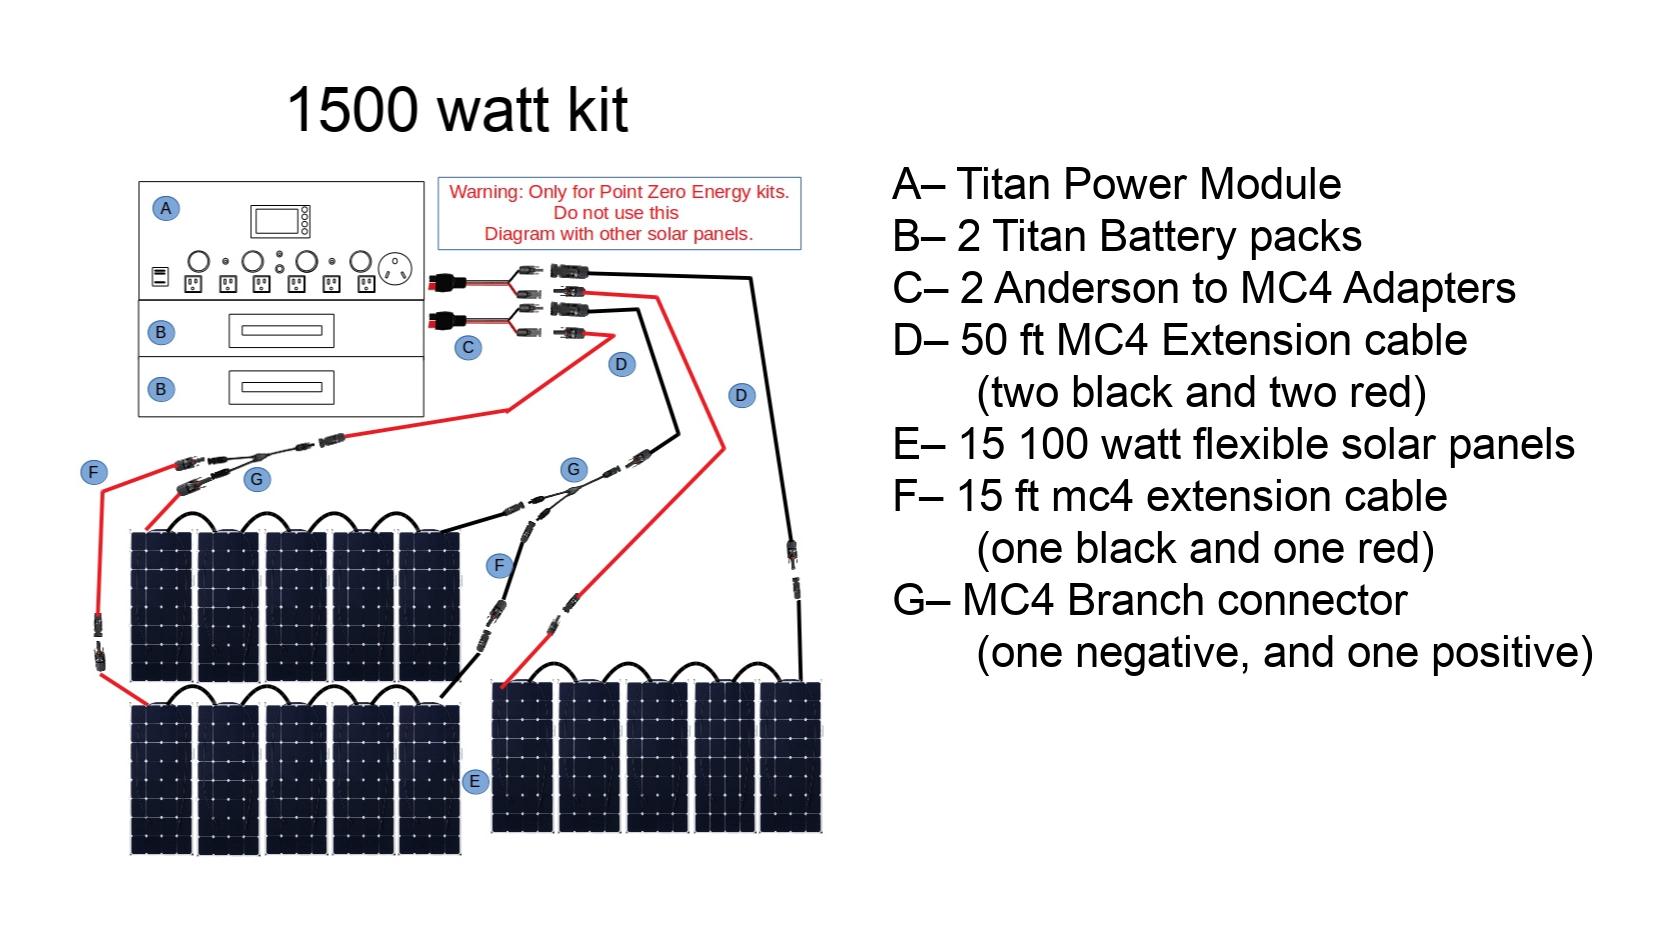 Picture of the Titan 1500 watt kit Diagram- Point Zero Energy Generators